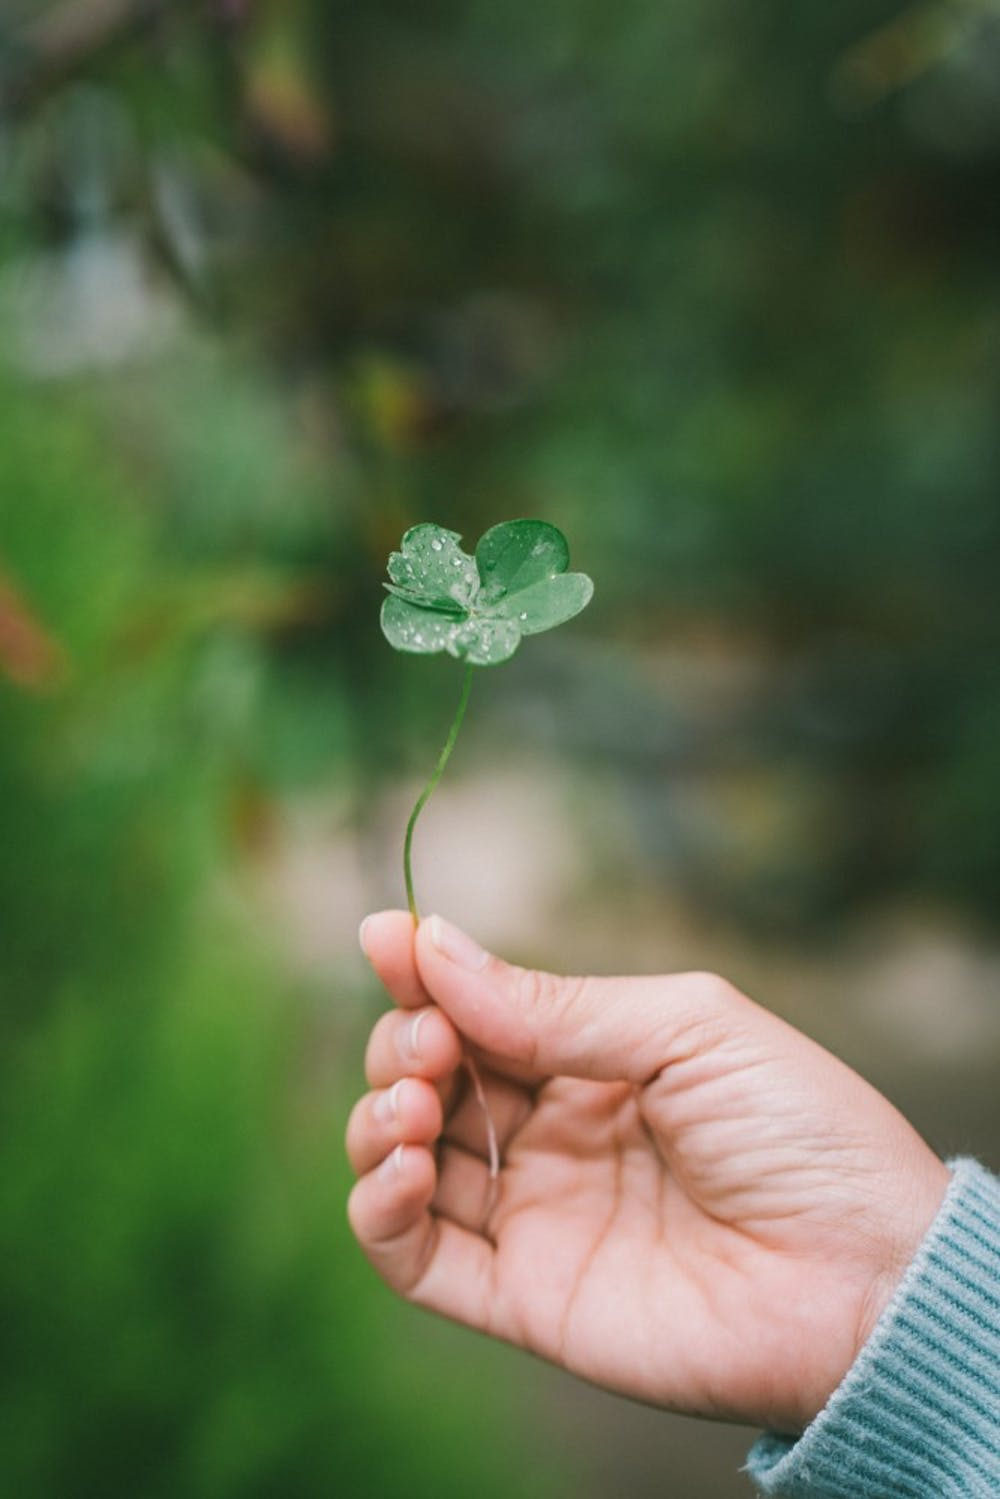 DIY decorations inspired by Pinterest can help save time and money when planning for any St. Patrick's Day party. Unsplash, Photo courtesy